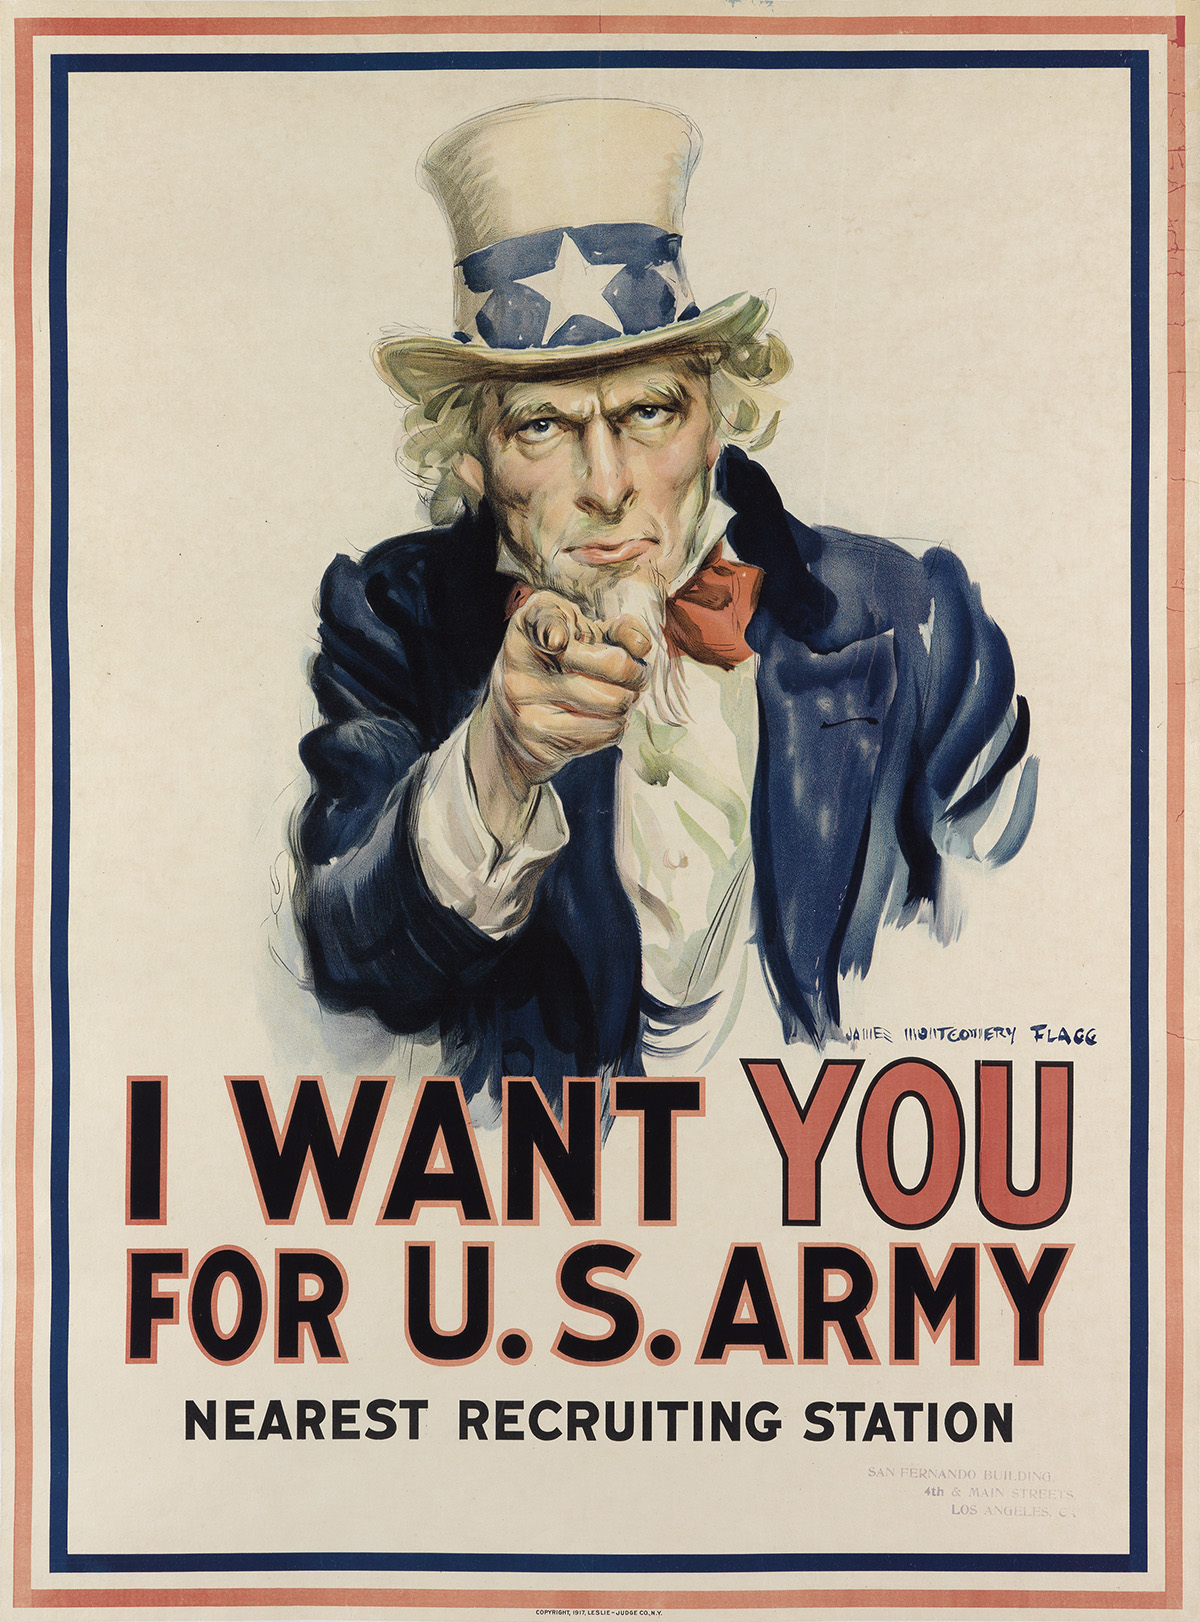 JAMES MONTGOMERY FLAGG (1870-1960). I WANT YOU FOR U.S. ARMY. 1917. 40x29 inches, 102x75 cm.